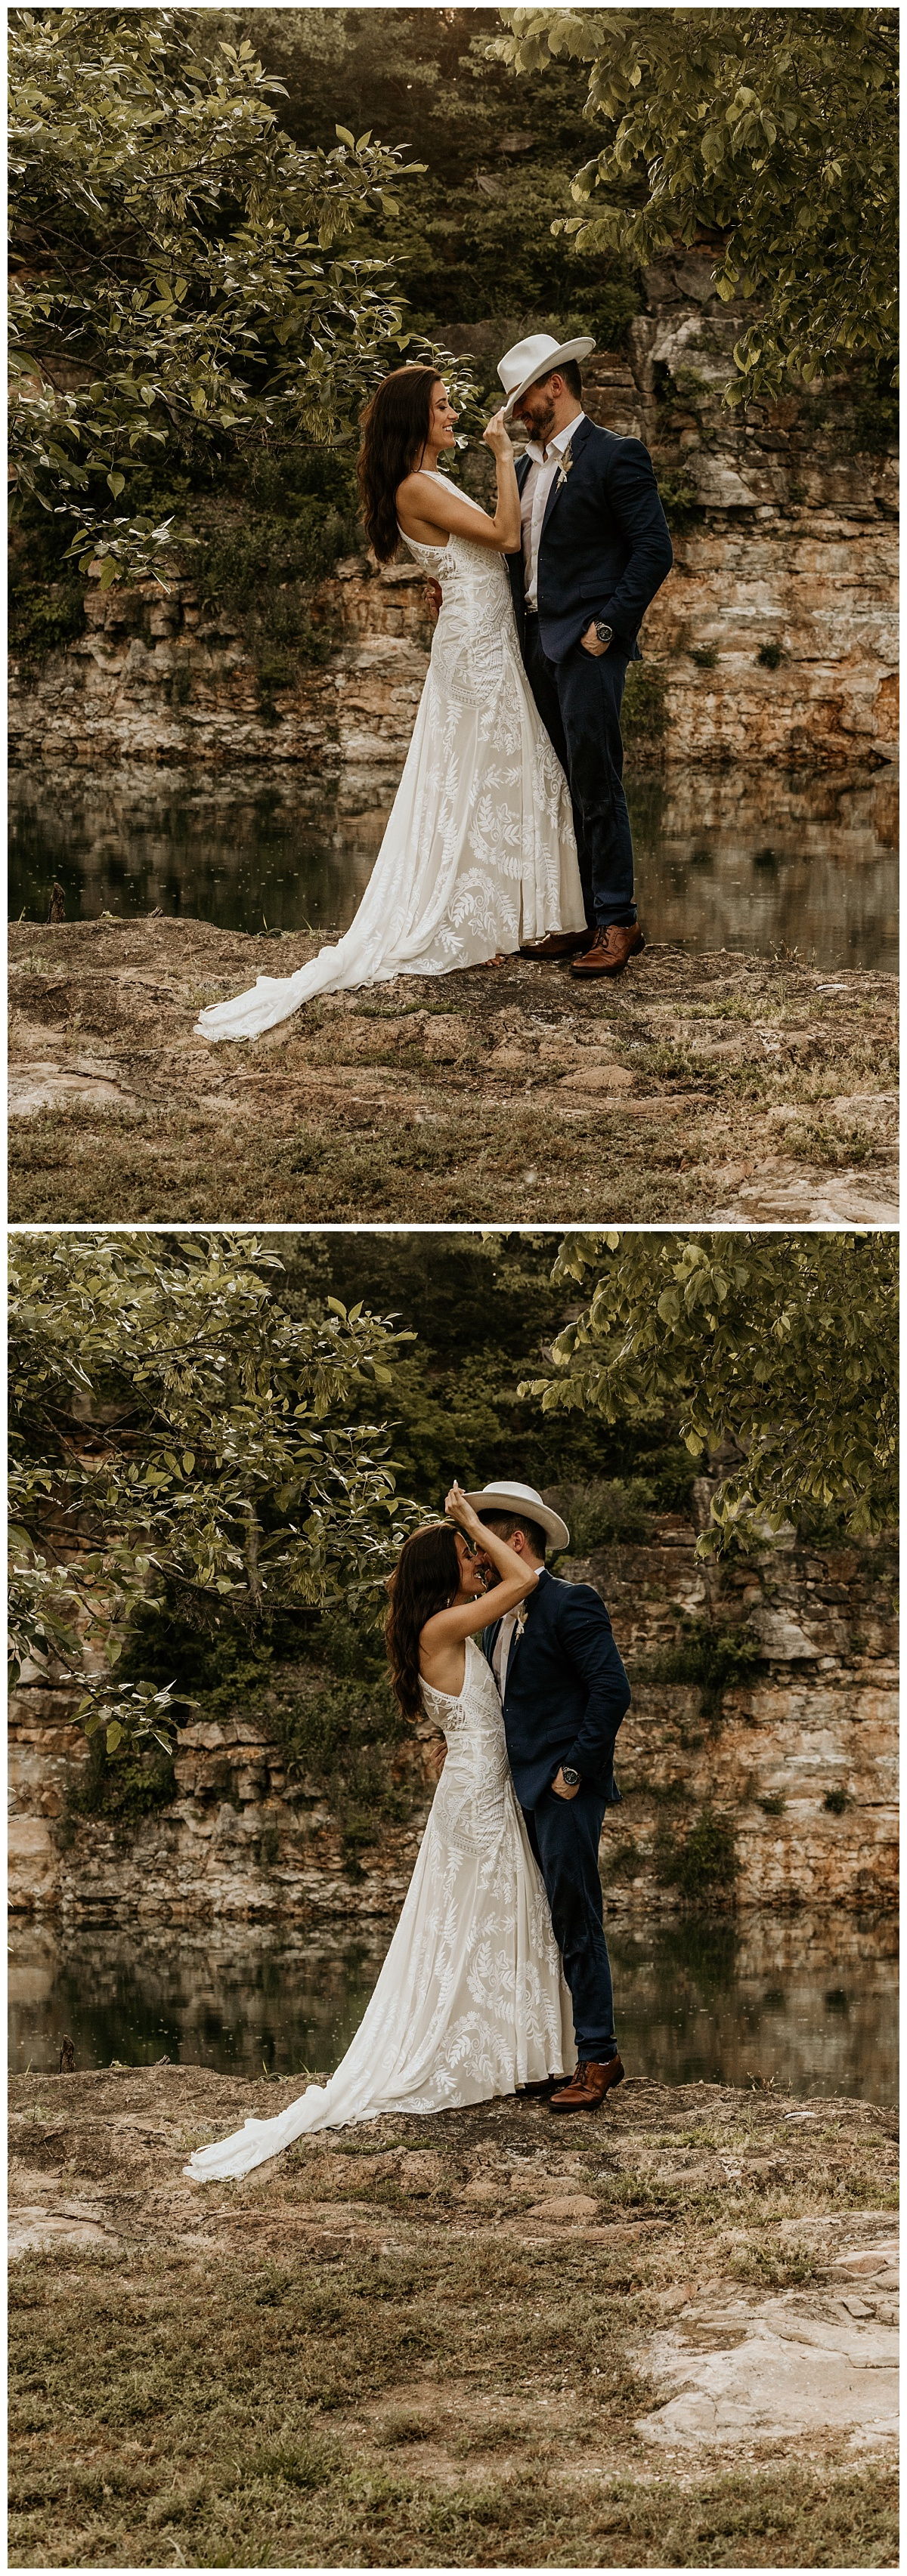 Boho Elopement | Kansas City Wedding Photography | Colorado Elopement | Outdoor Wedding | Outdoor Elopement Photos | Lake Wedding